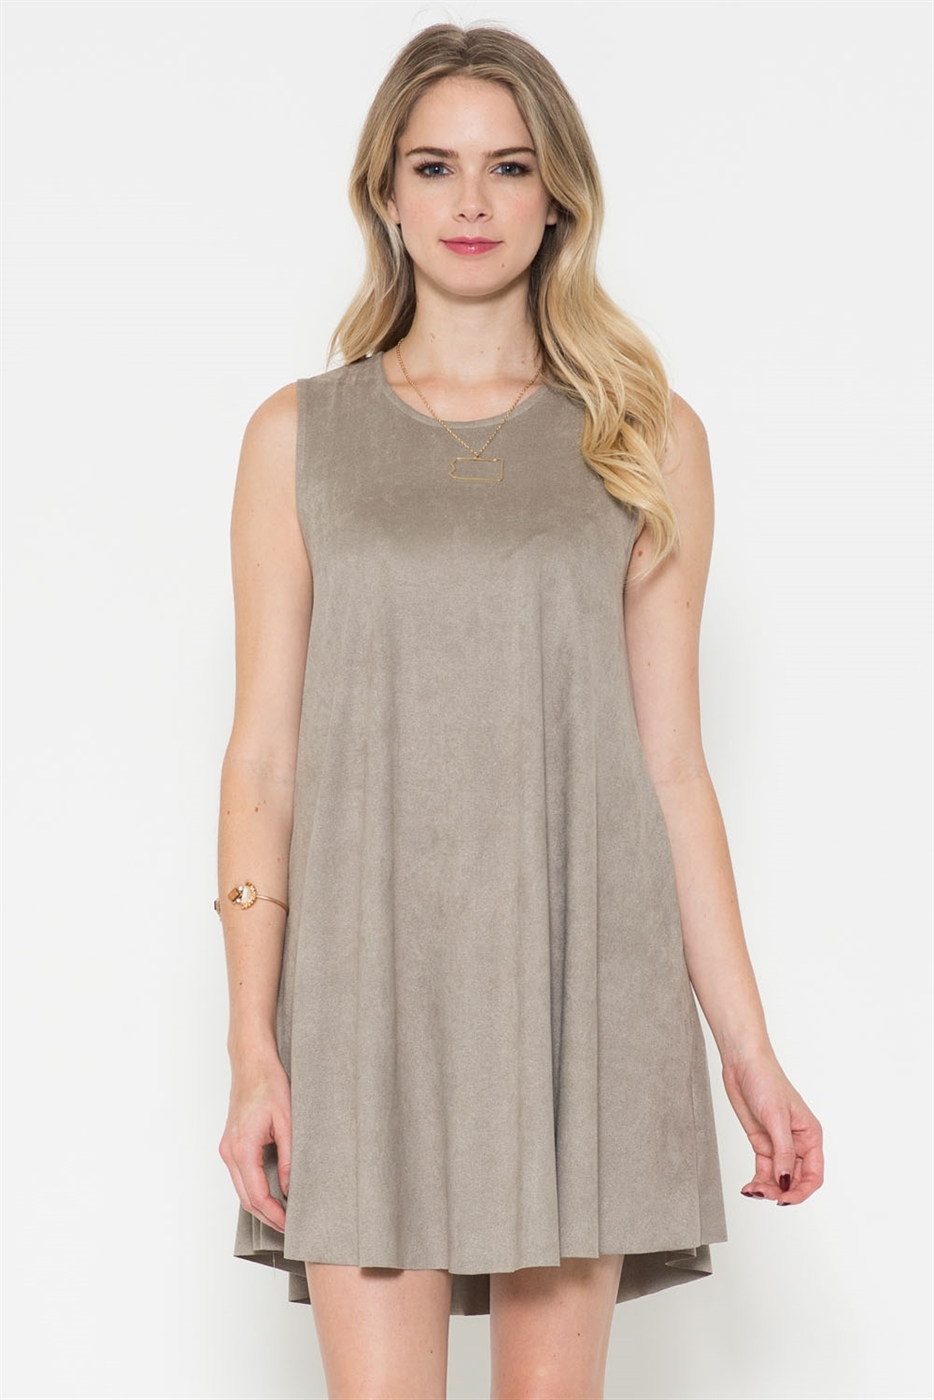 SUEDE TUNIC KEYHOLE BACK DRESS - orangeshine.com